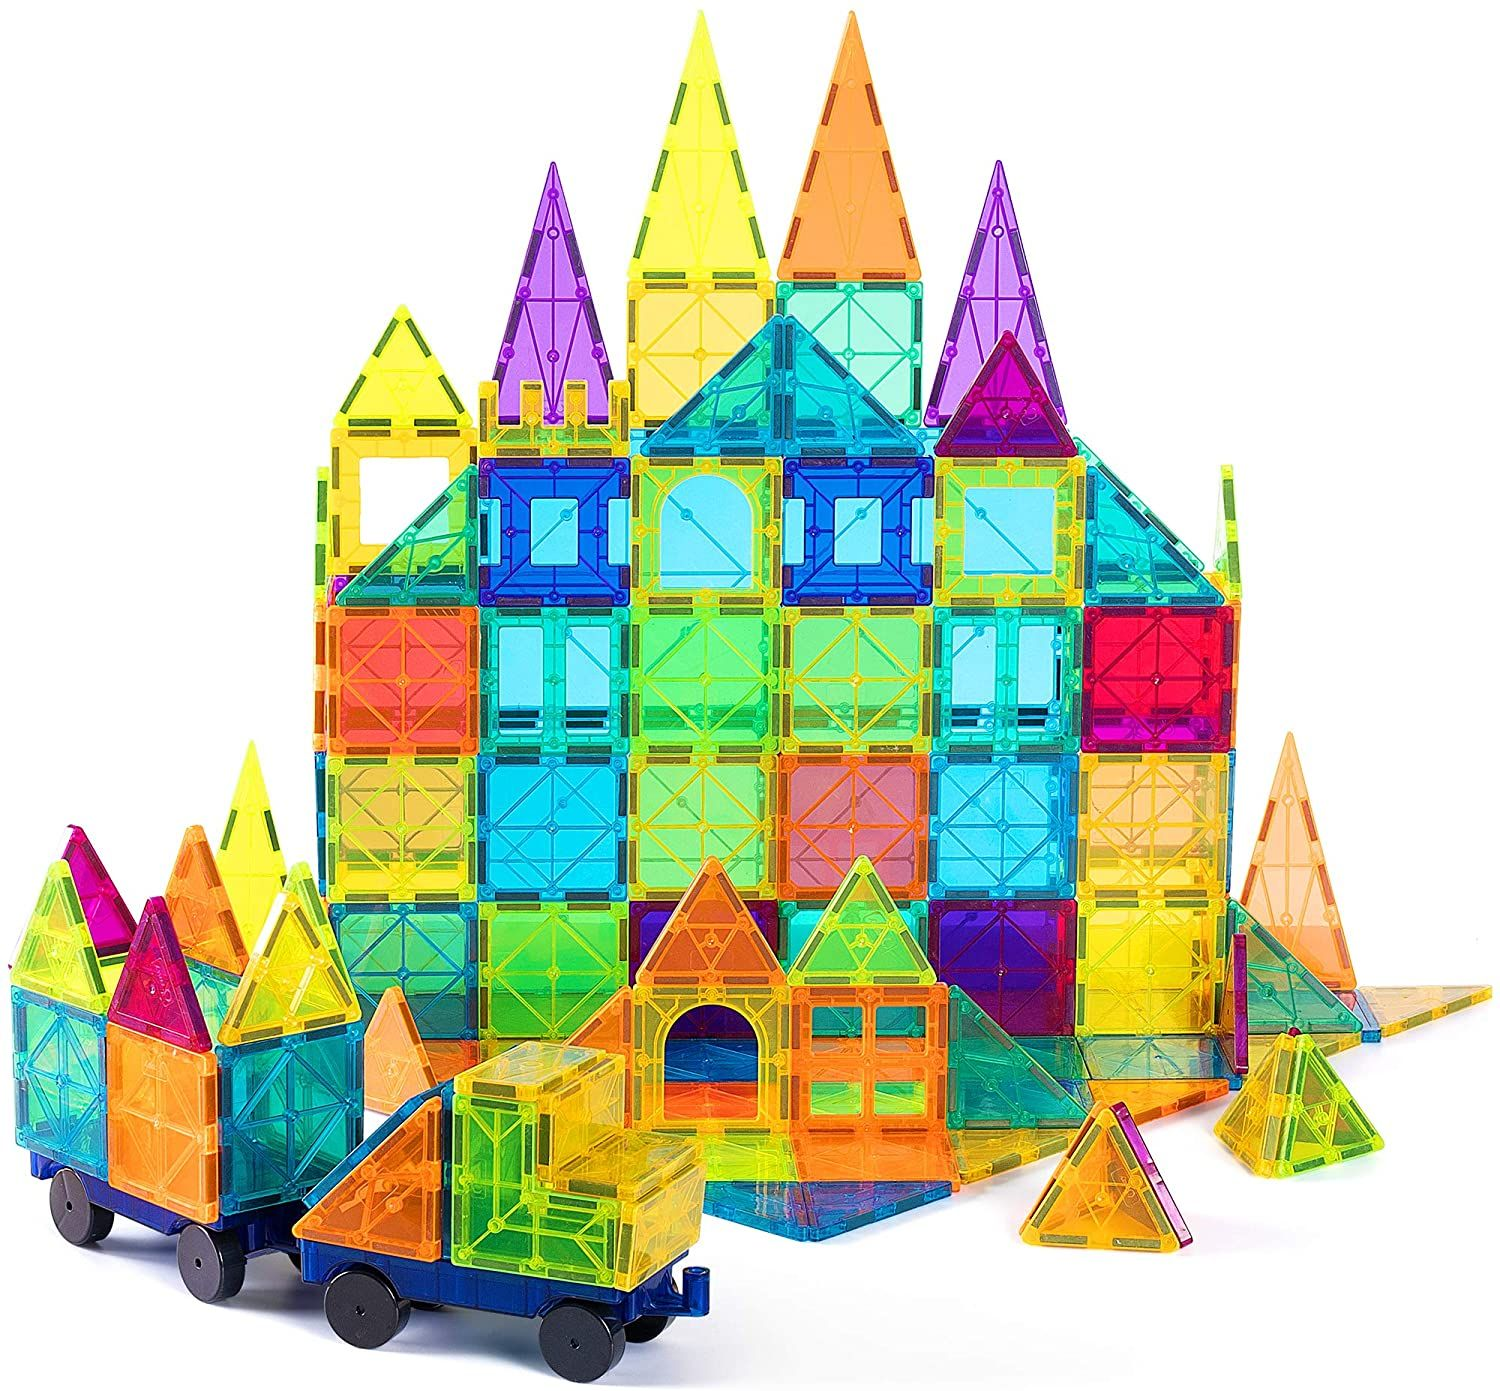 Price 49 99 Top Cossy Kids Magnet Toys Magnet Building Tiles 120 Pcs 3d In 2020 Educational Toys For Kids Magnetic Toys Kids Toys